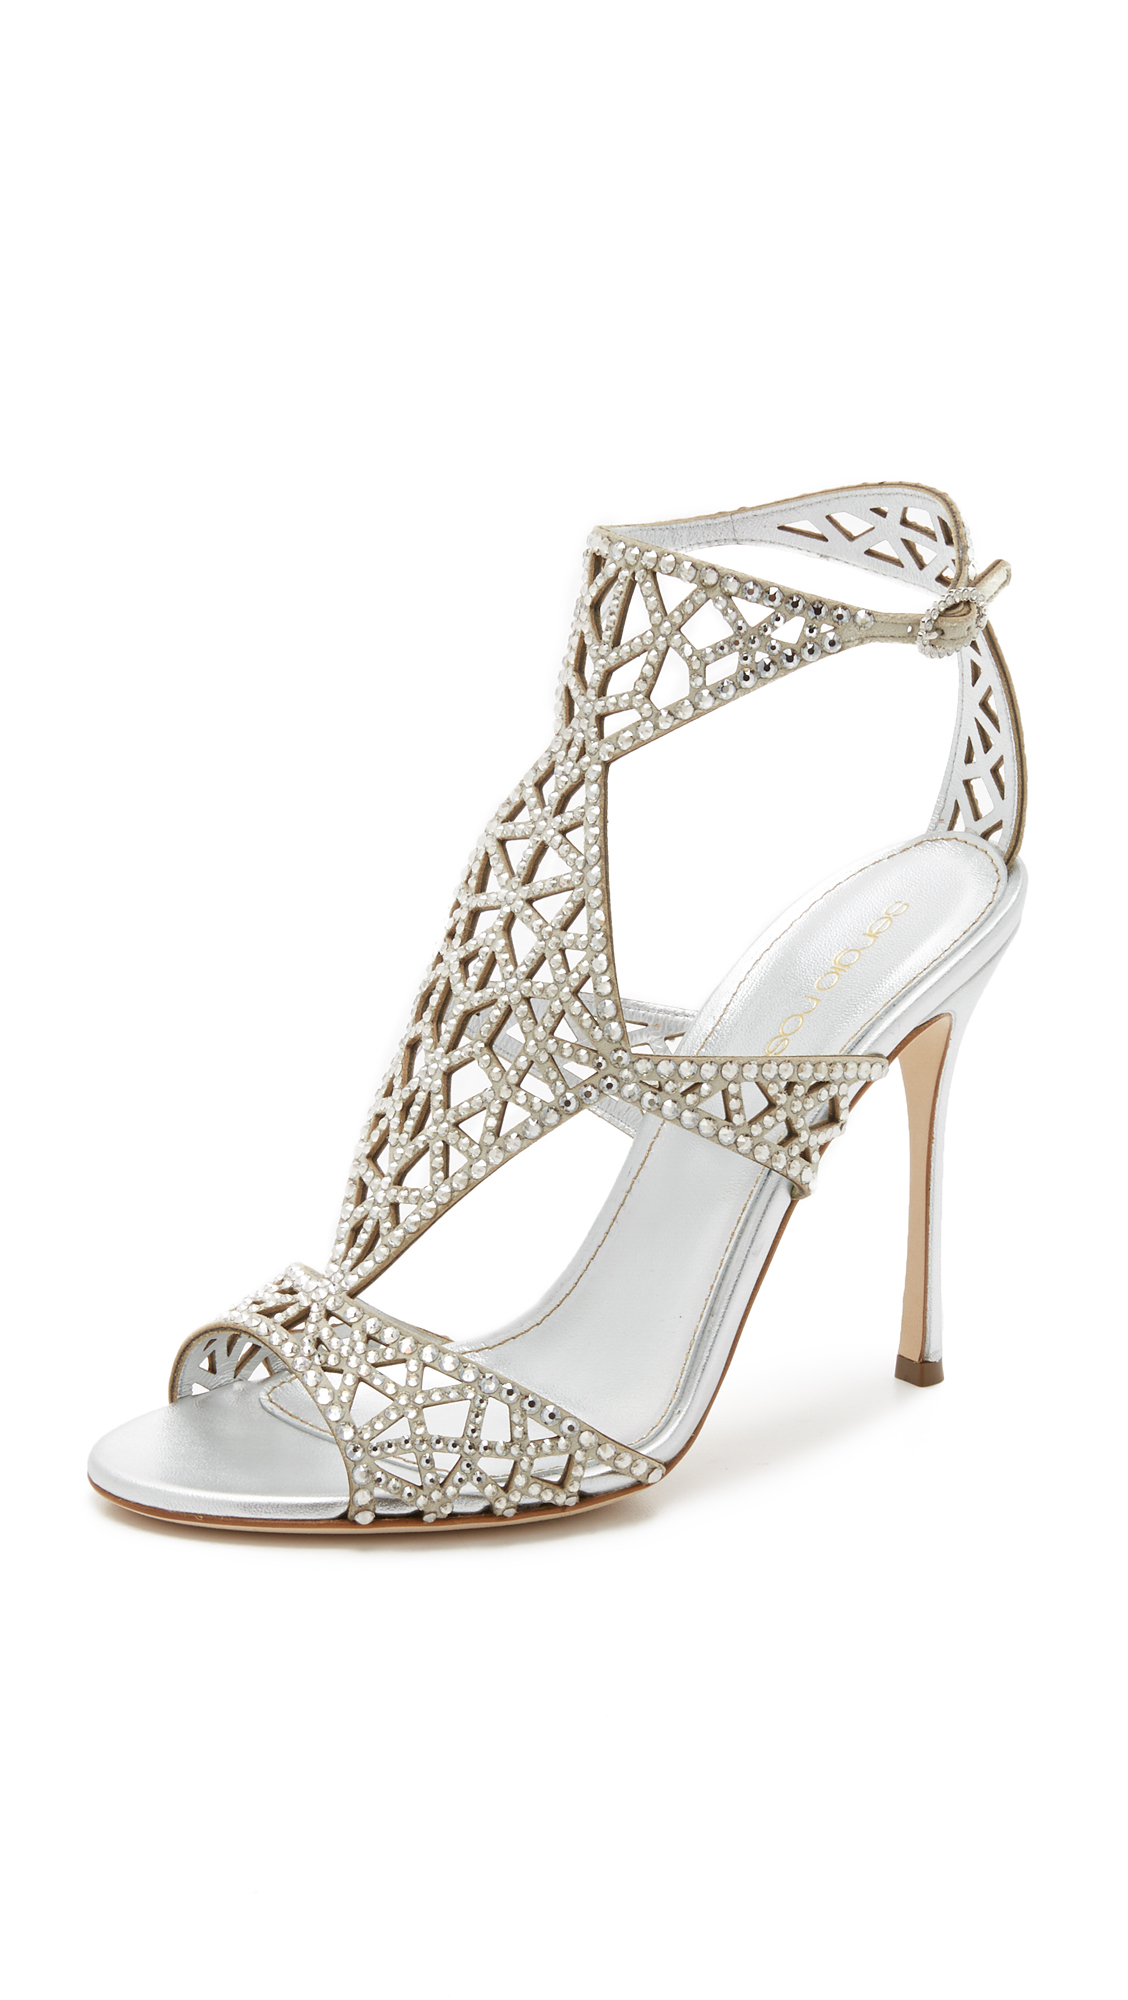 online shop from china Sergio Rossi Snakeskin Cutout Sandals w/ Tags cheap real authentic amazon sale extremely free shipping 100% guaranteed SCKig2ocVA